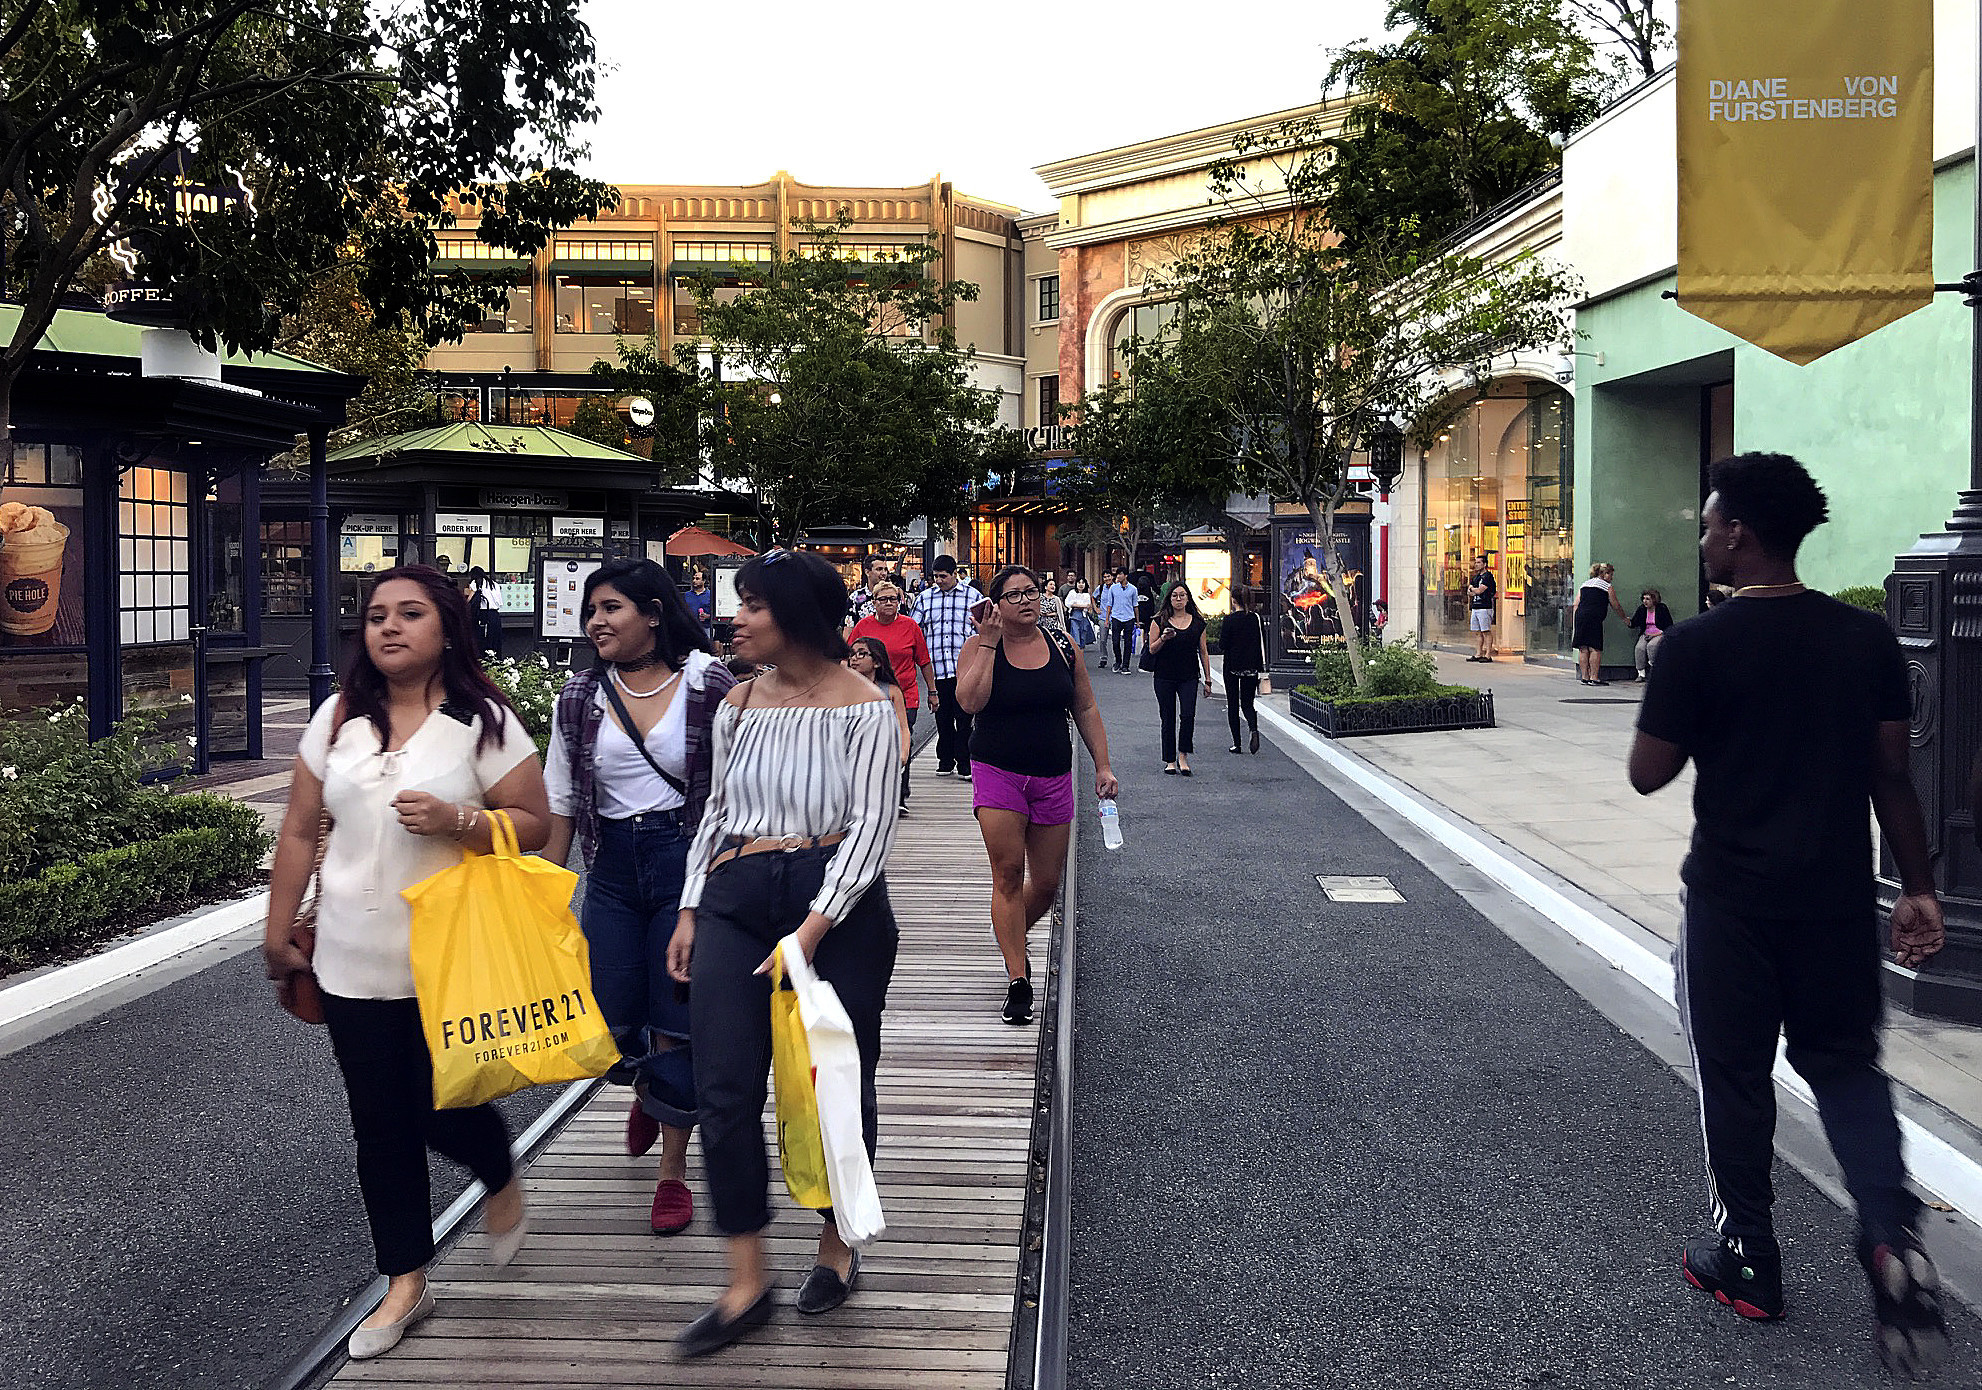 Shoppers stroll the grounds of the Americana at Brand shopping center in Glendale.